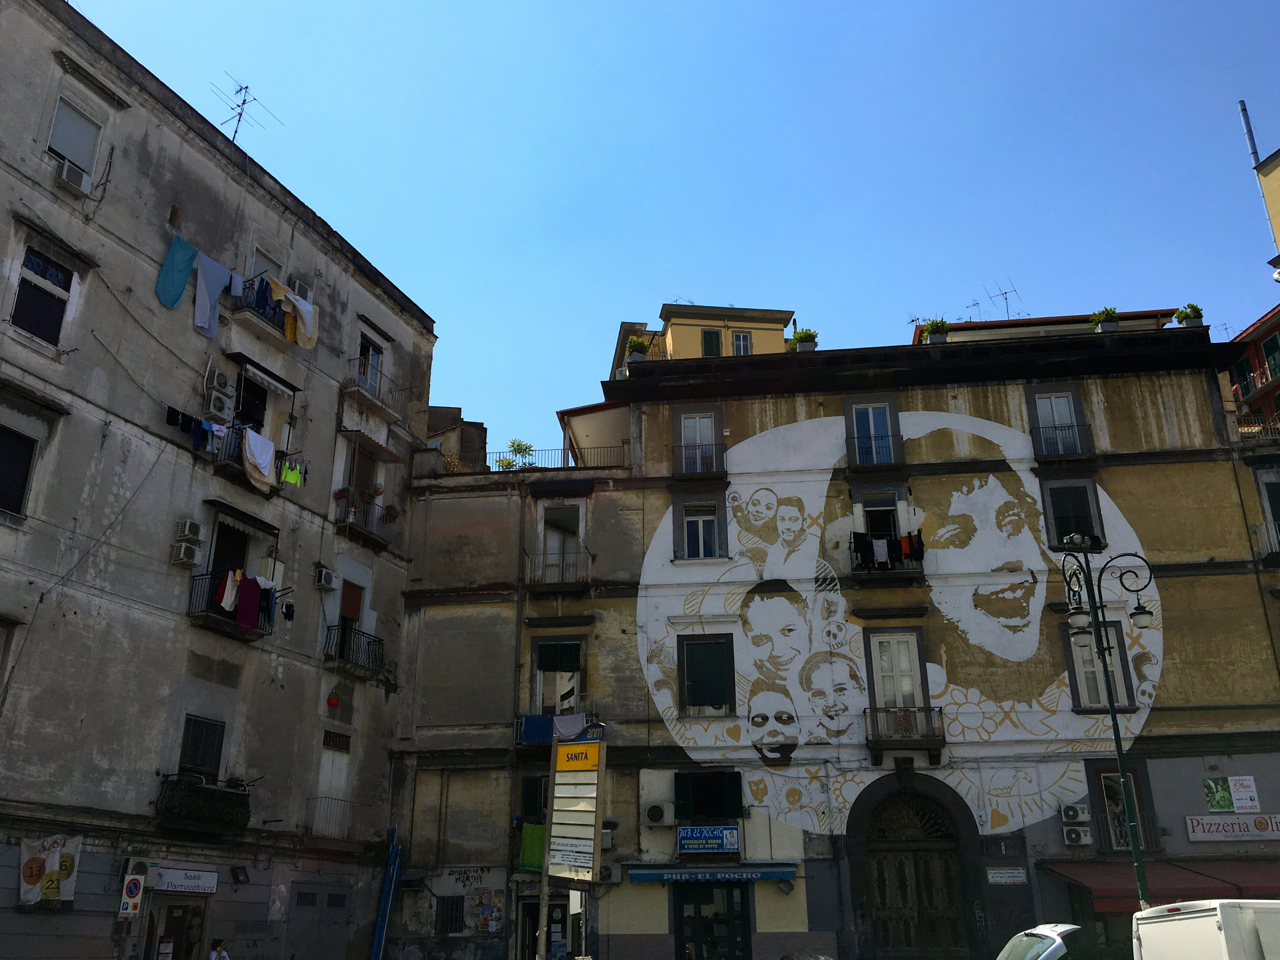 Naples Italy A Visit To Rione Sanit 224 Skulls Scars